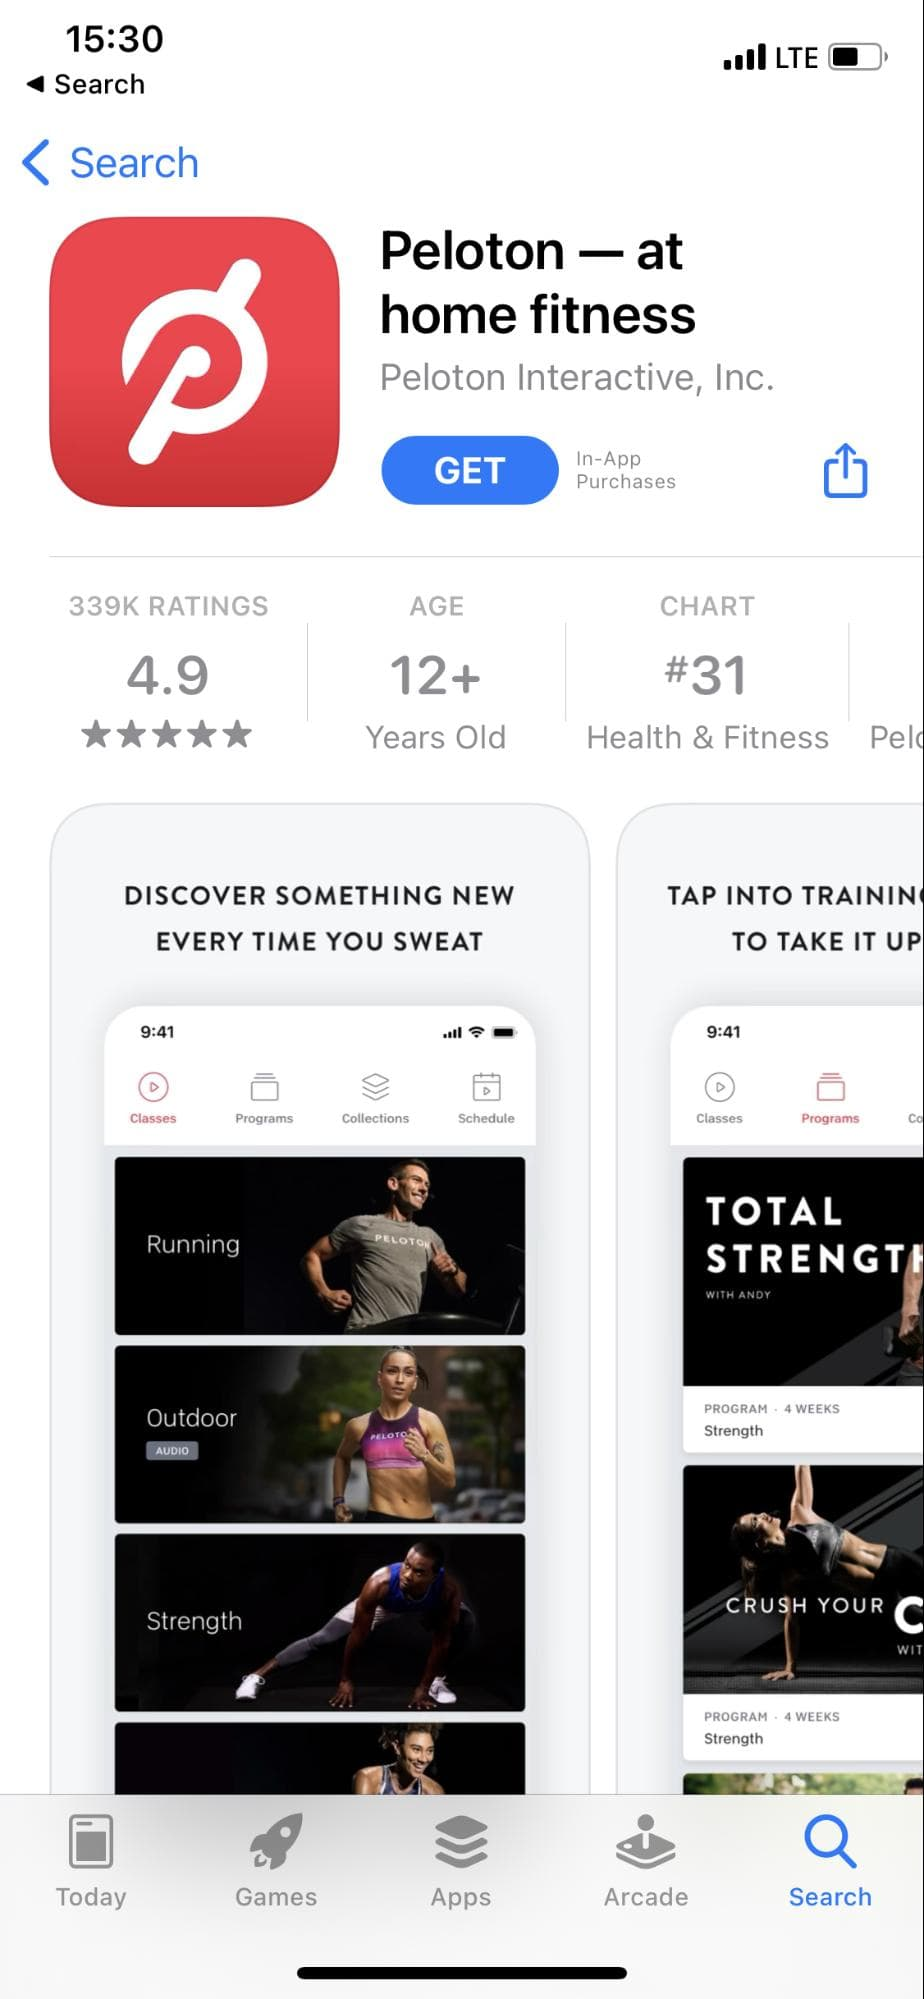 peloton - at home fitness app on app store